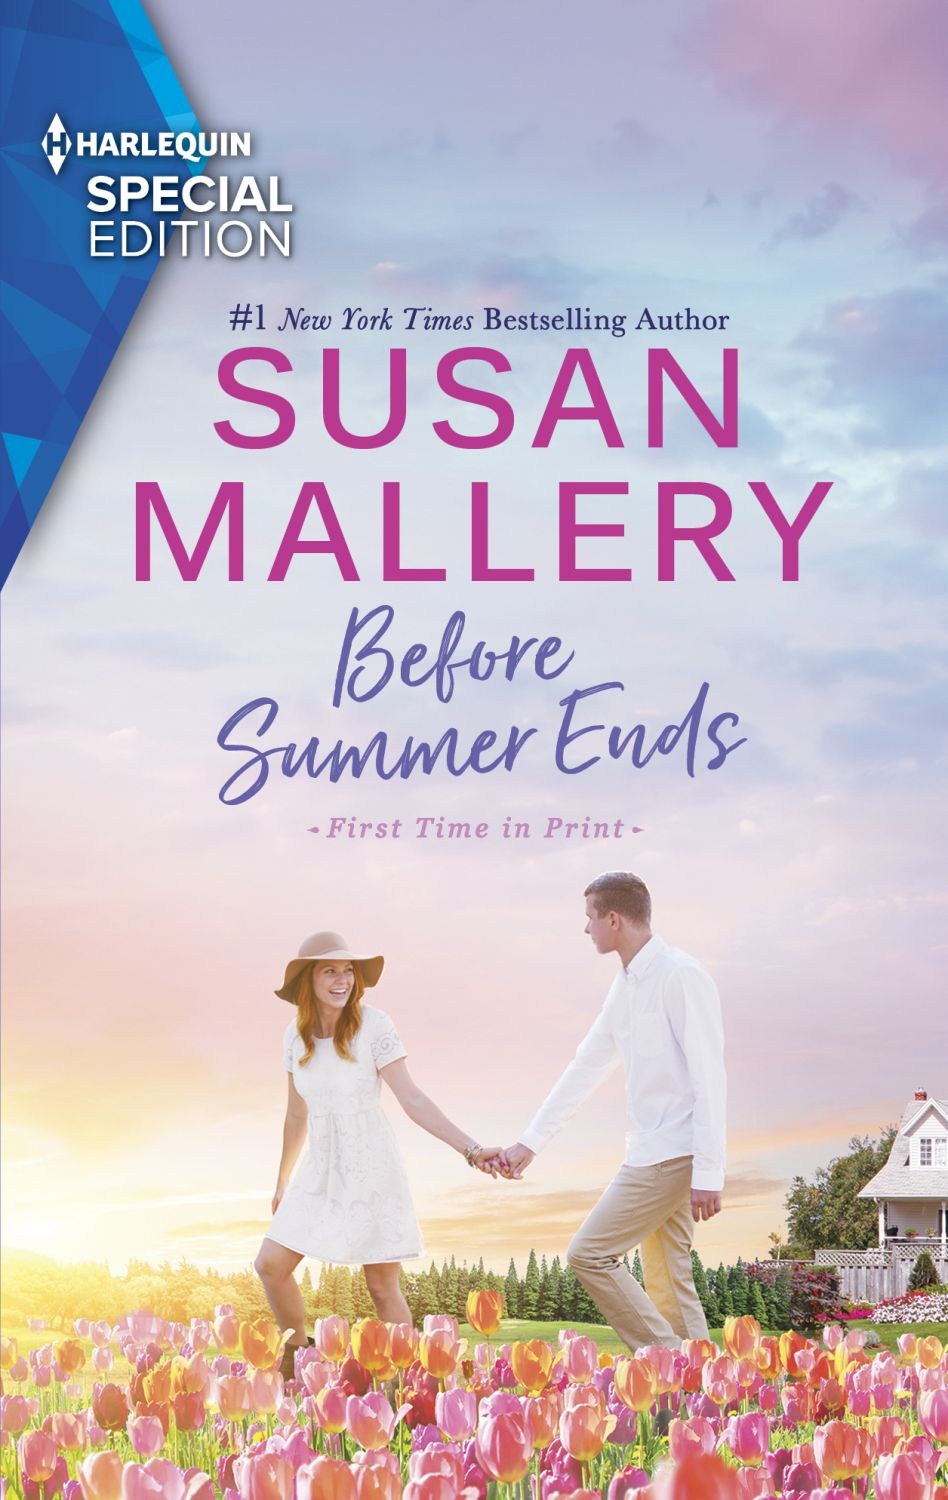 https://tlcbooktours.com/wp-content/uploads/2021/03/Before-Summer-Ends-cover.jpg